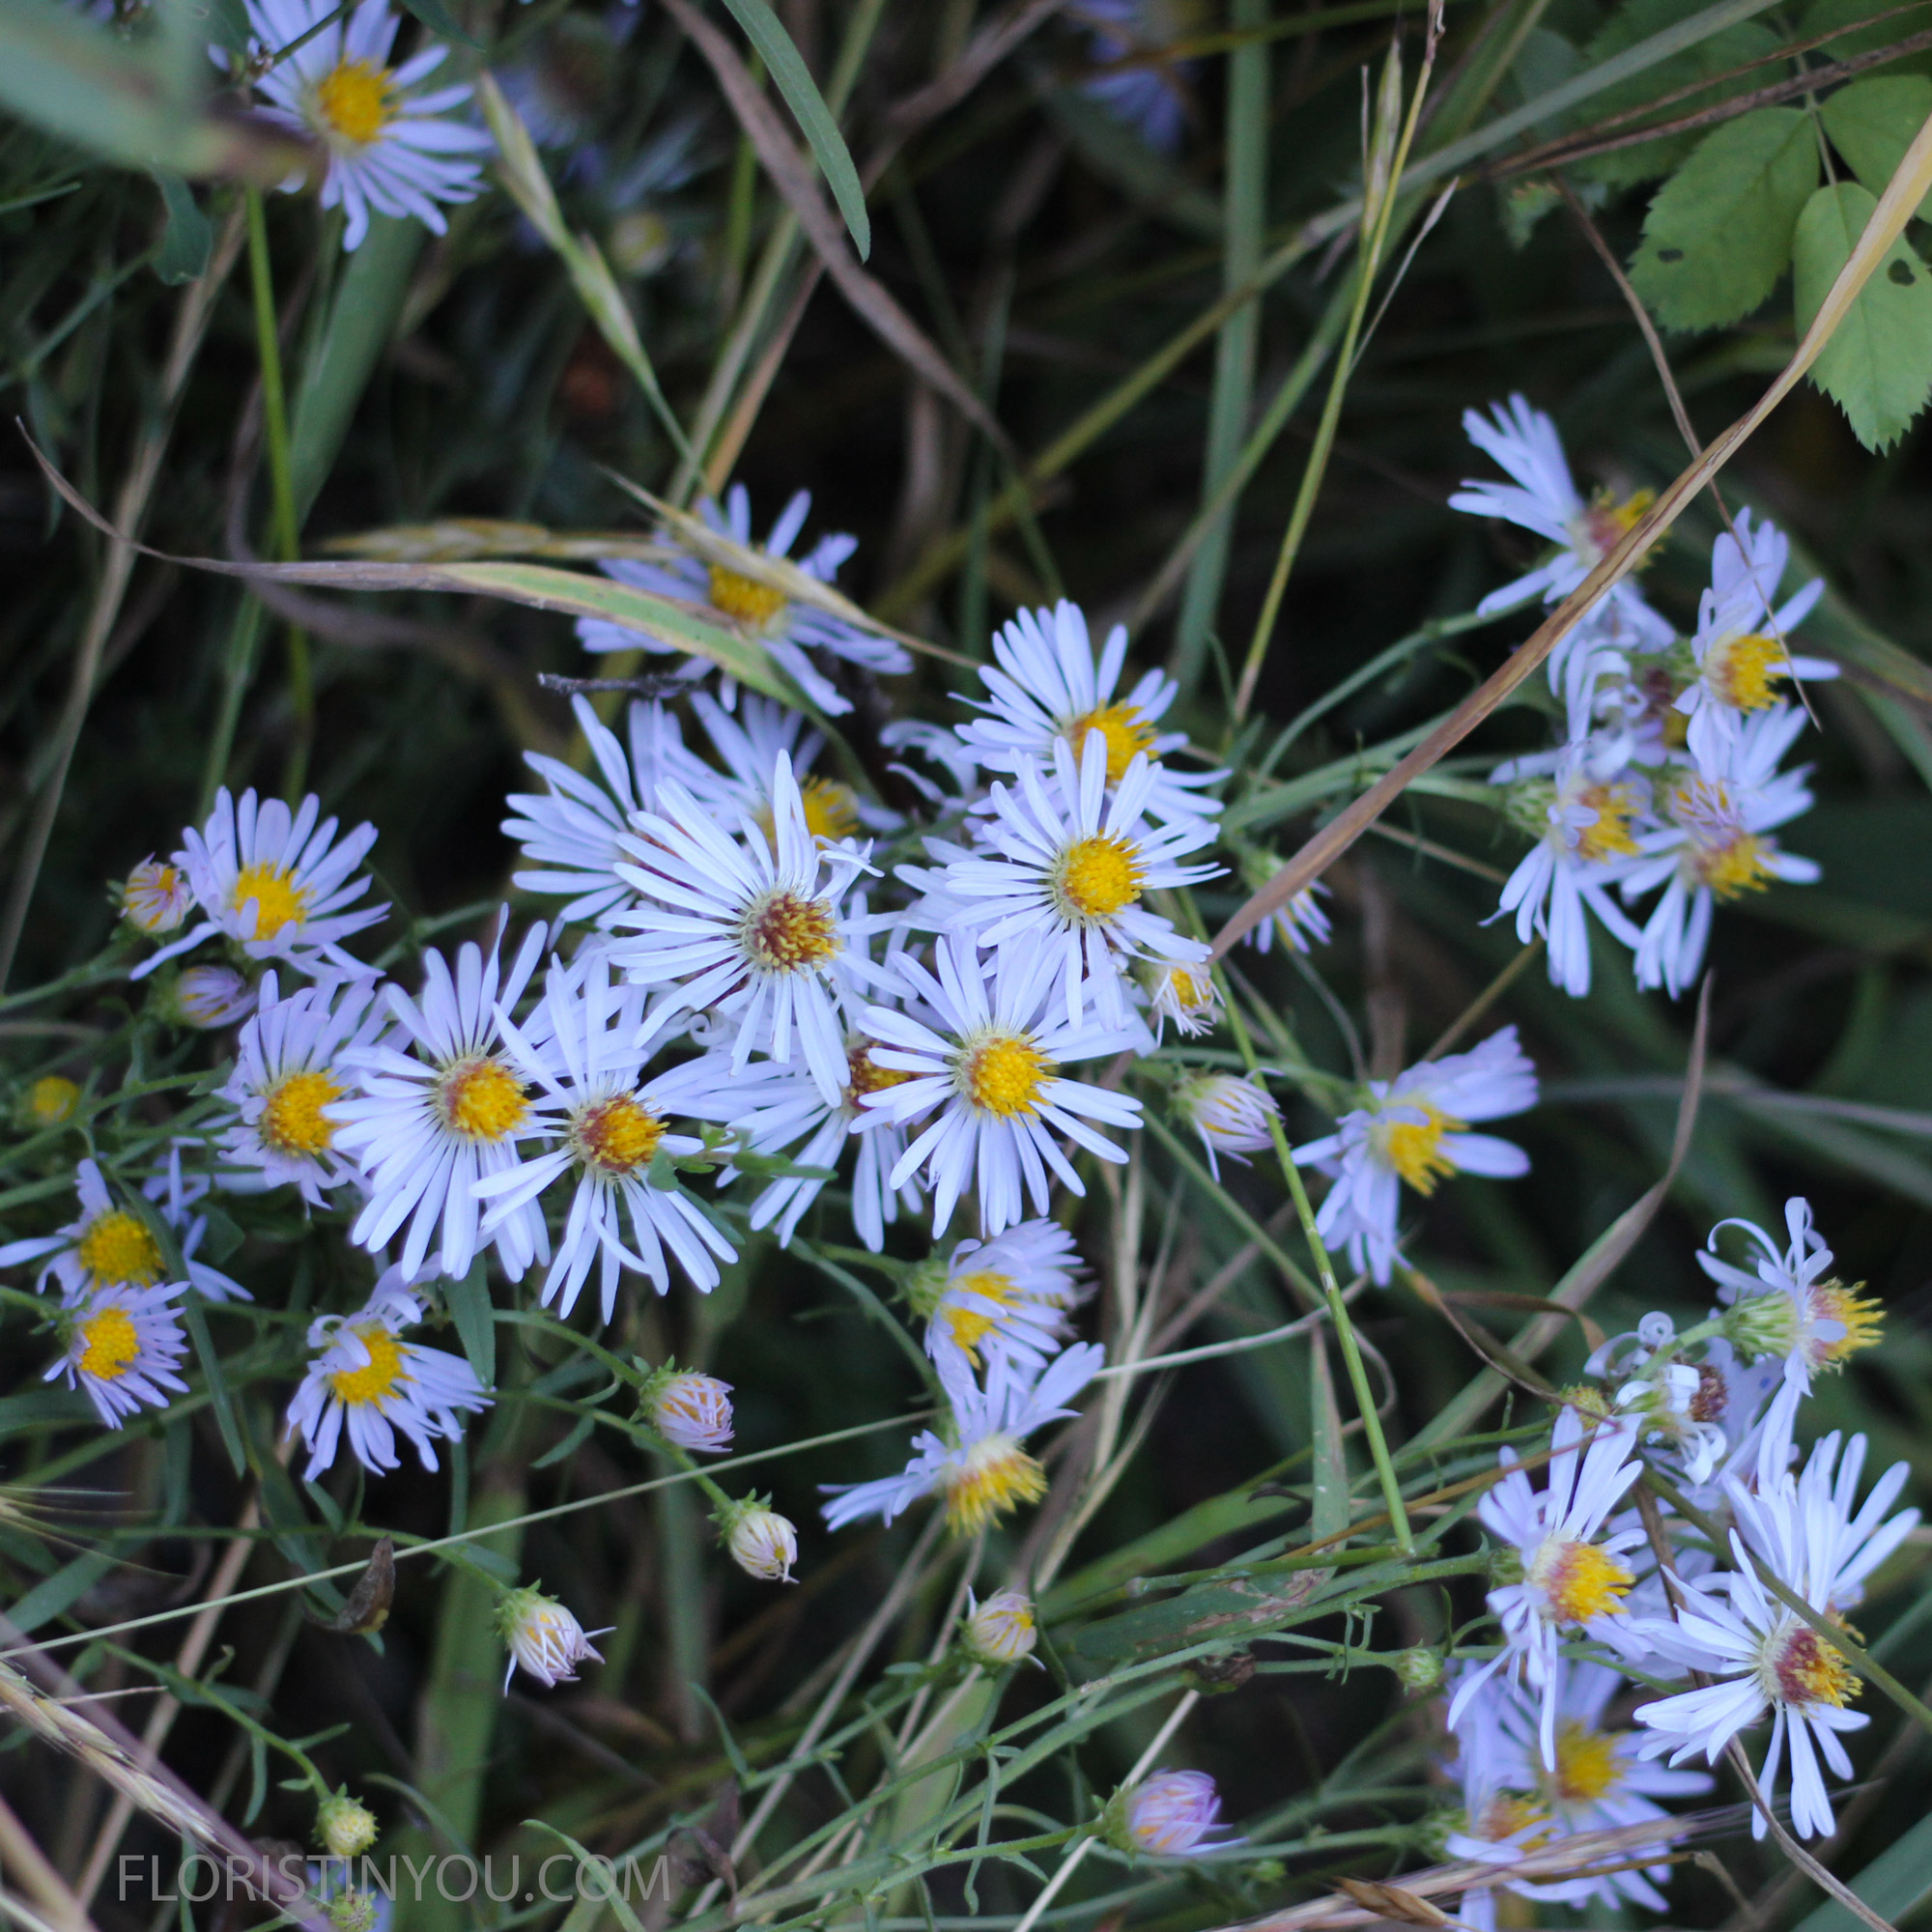 Pacific Aster   Aster ascendens  peek out between grass blades. Their petals look like lavender eye lashes.